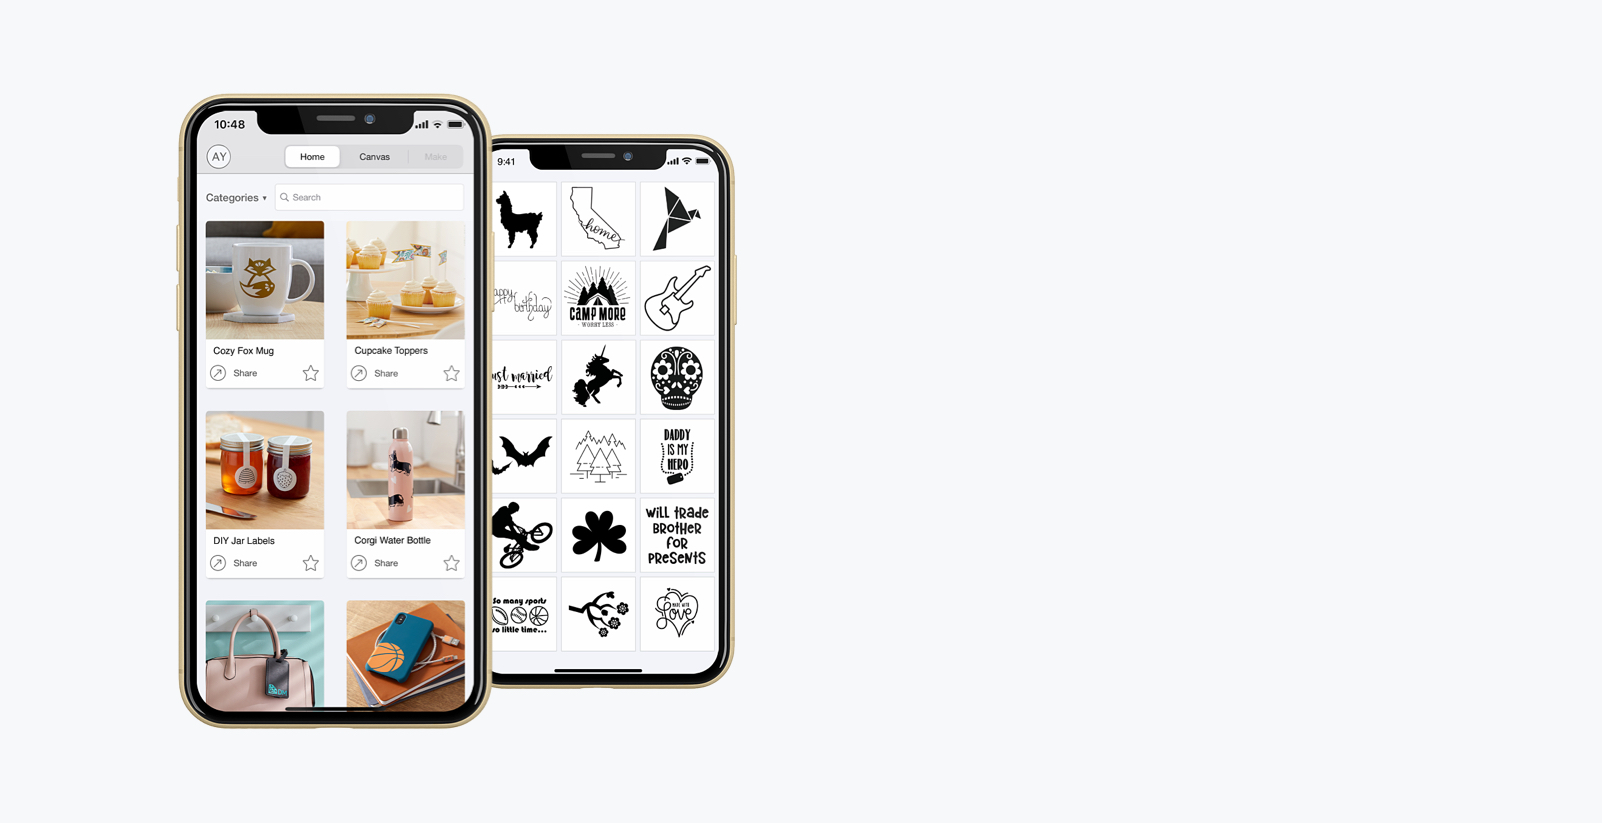 Design Space on a phone